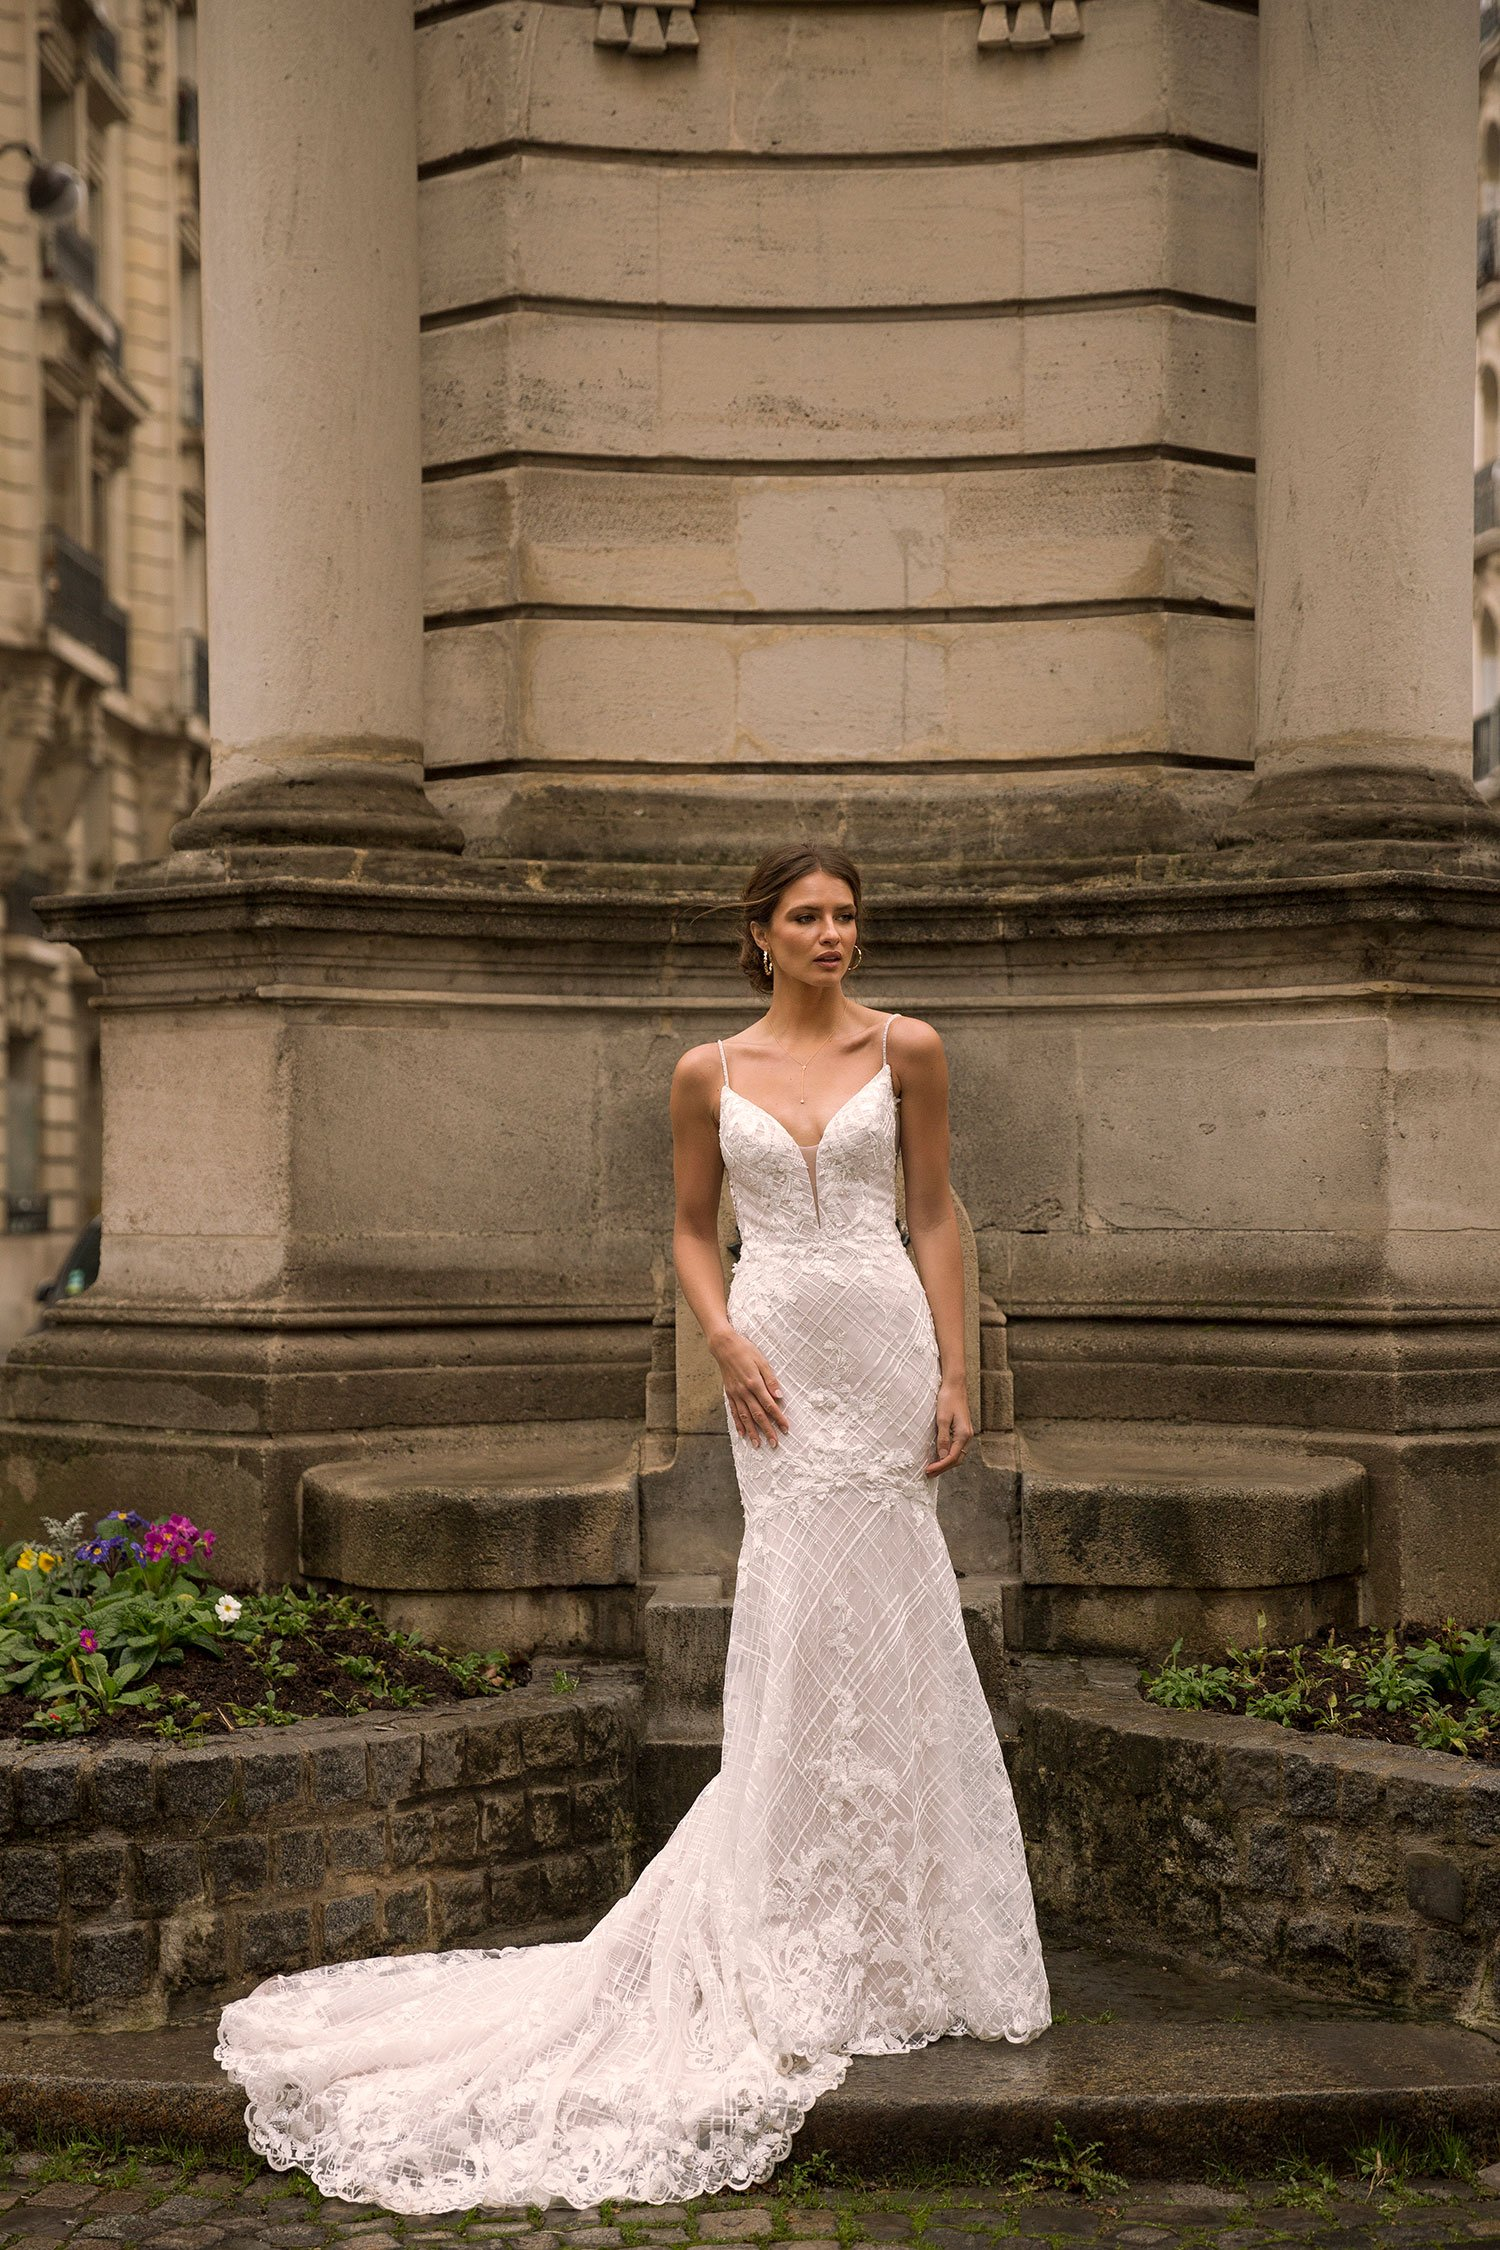 IMANI-ML7619-FULL-LACE-FITTED-GOWN-WITH-PLUNGING-NECKLINE-LOW-BACK-SPAGHETTI-STRAPS-WITH-ZIP-UP-BACK-WEDDING-DRESS-MADI-LANE-BRIDAL1